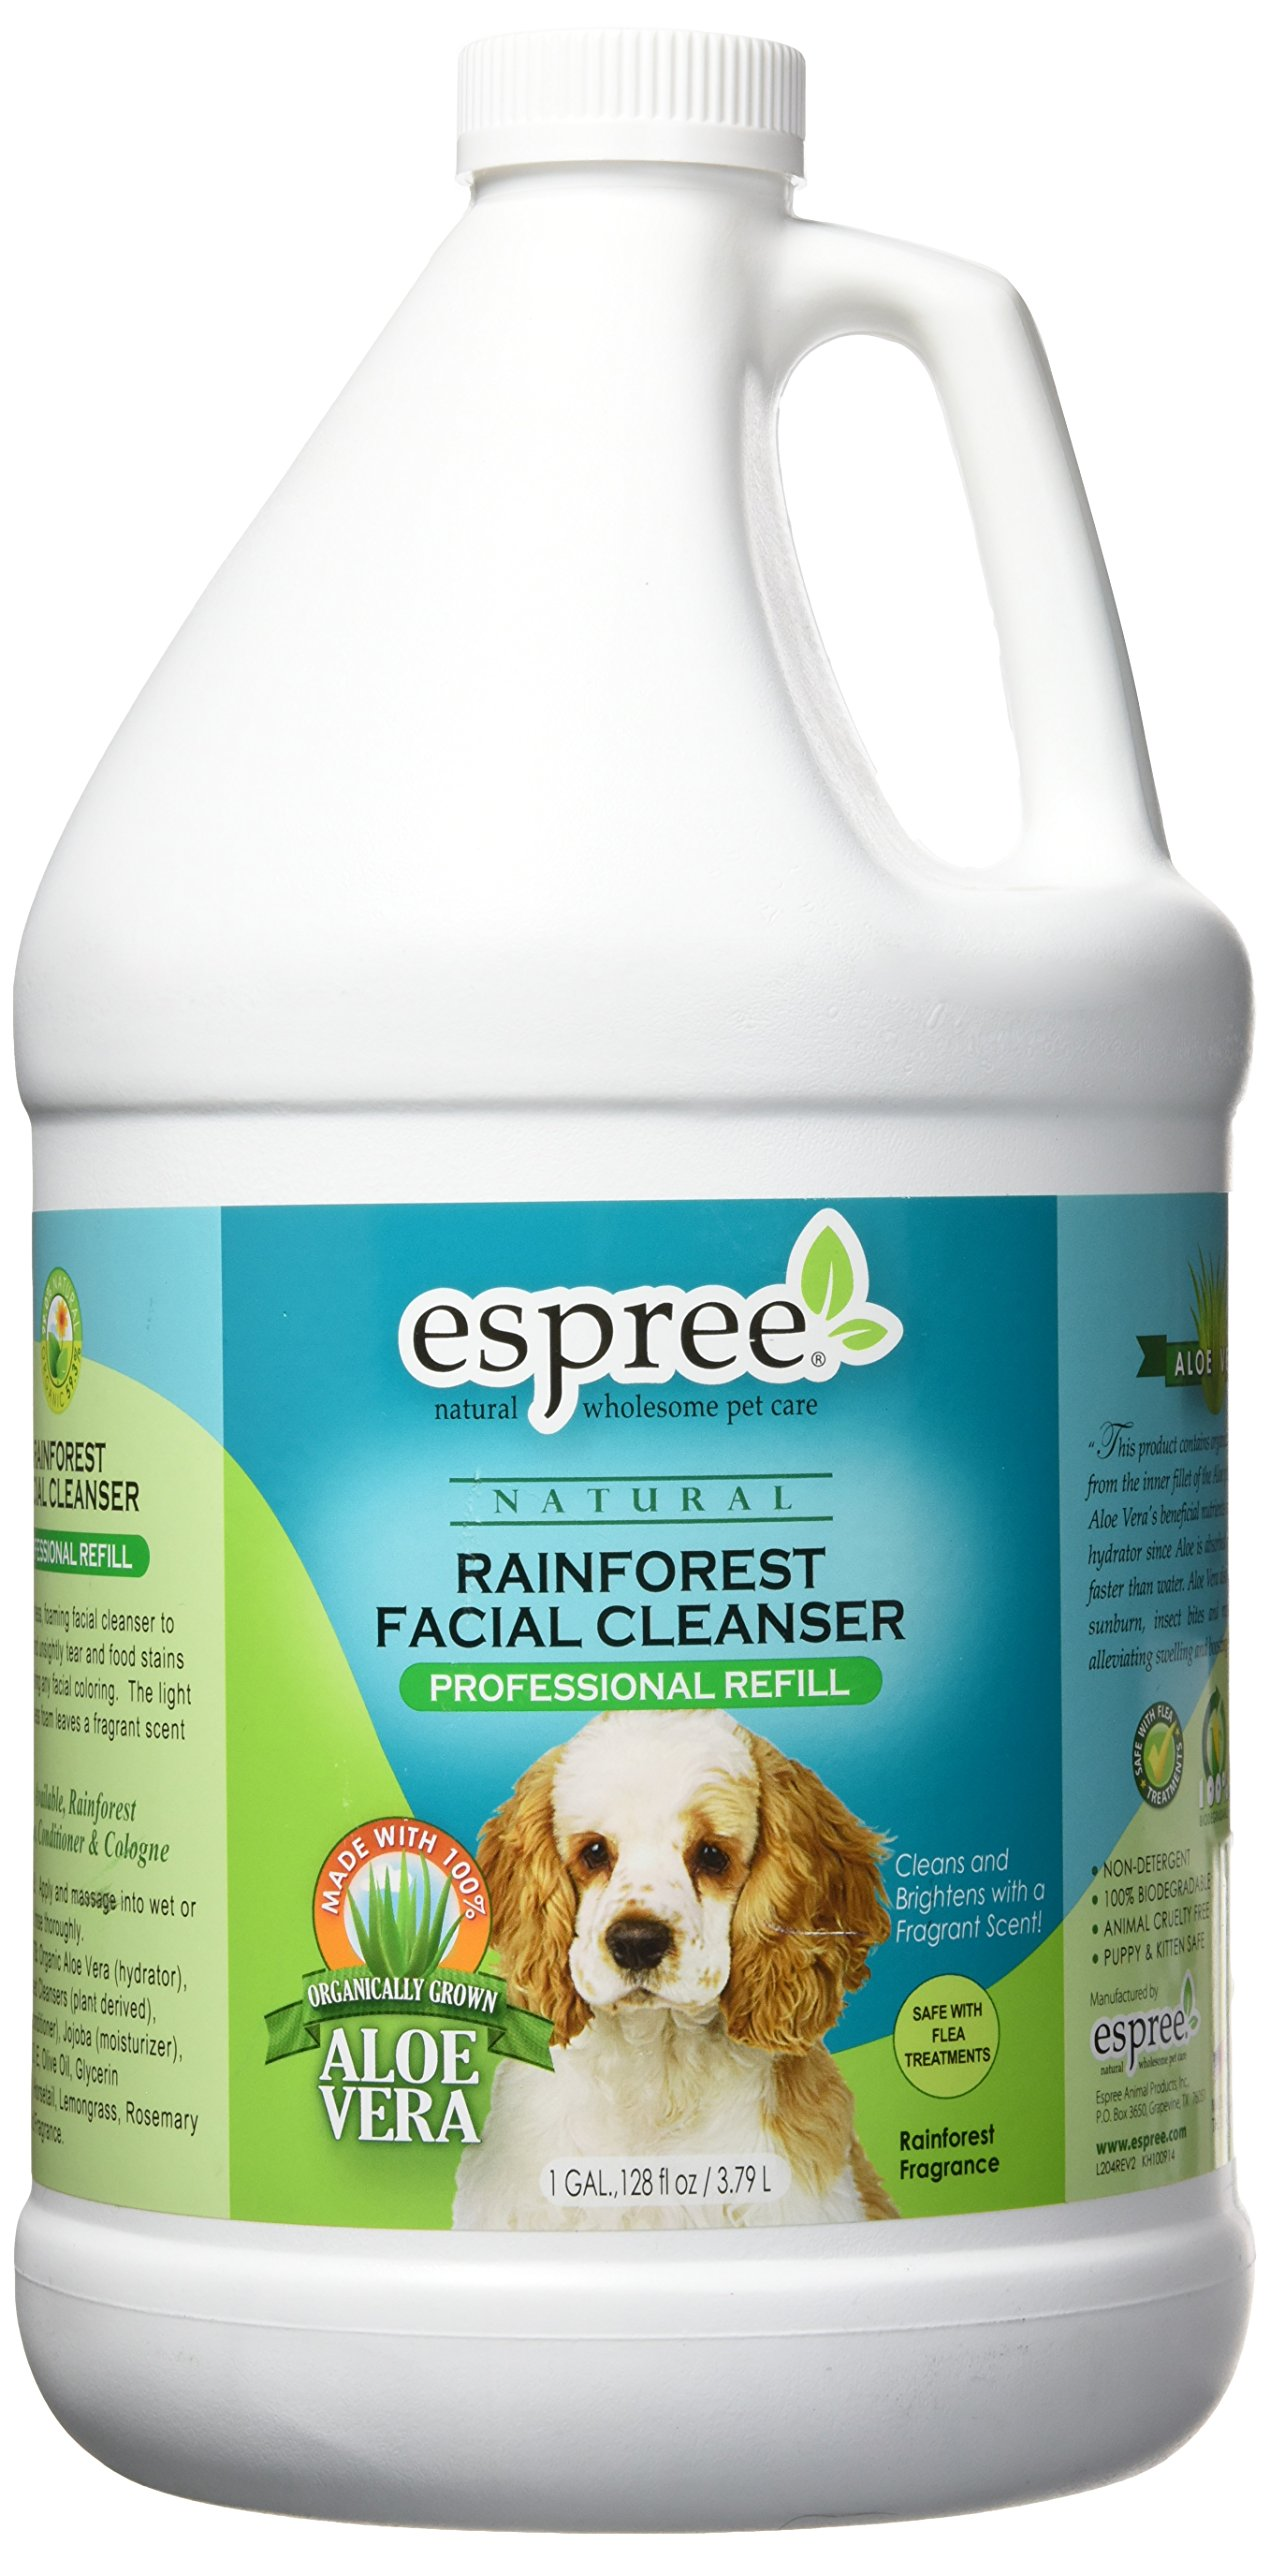 Espree Rainforest Facial Cleaner, 1 gallon